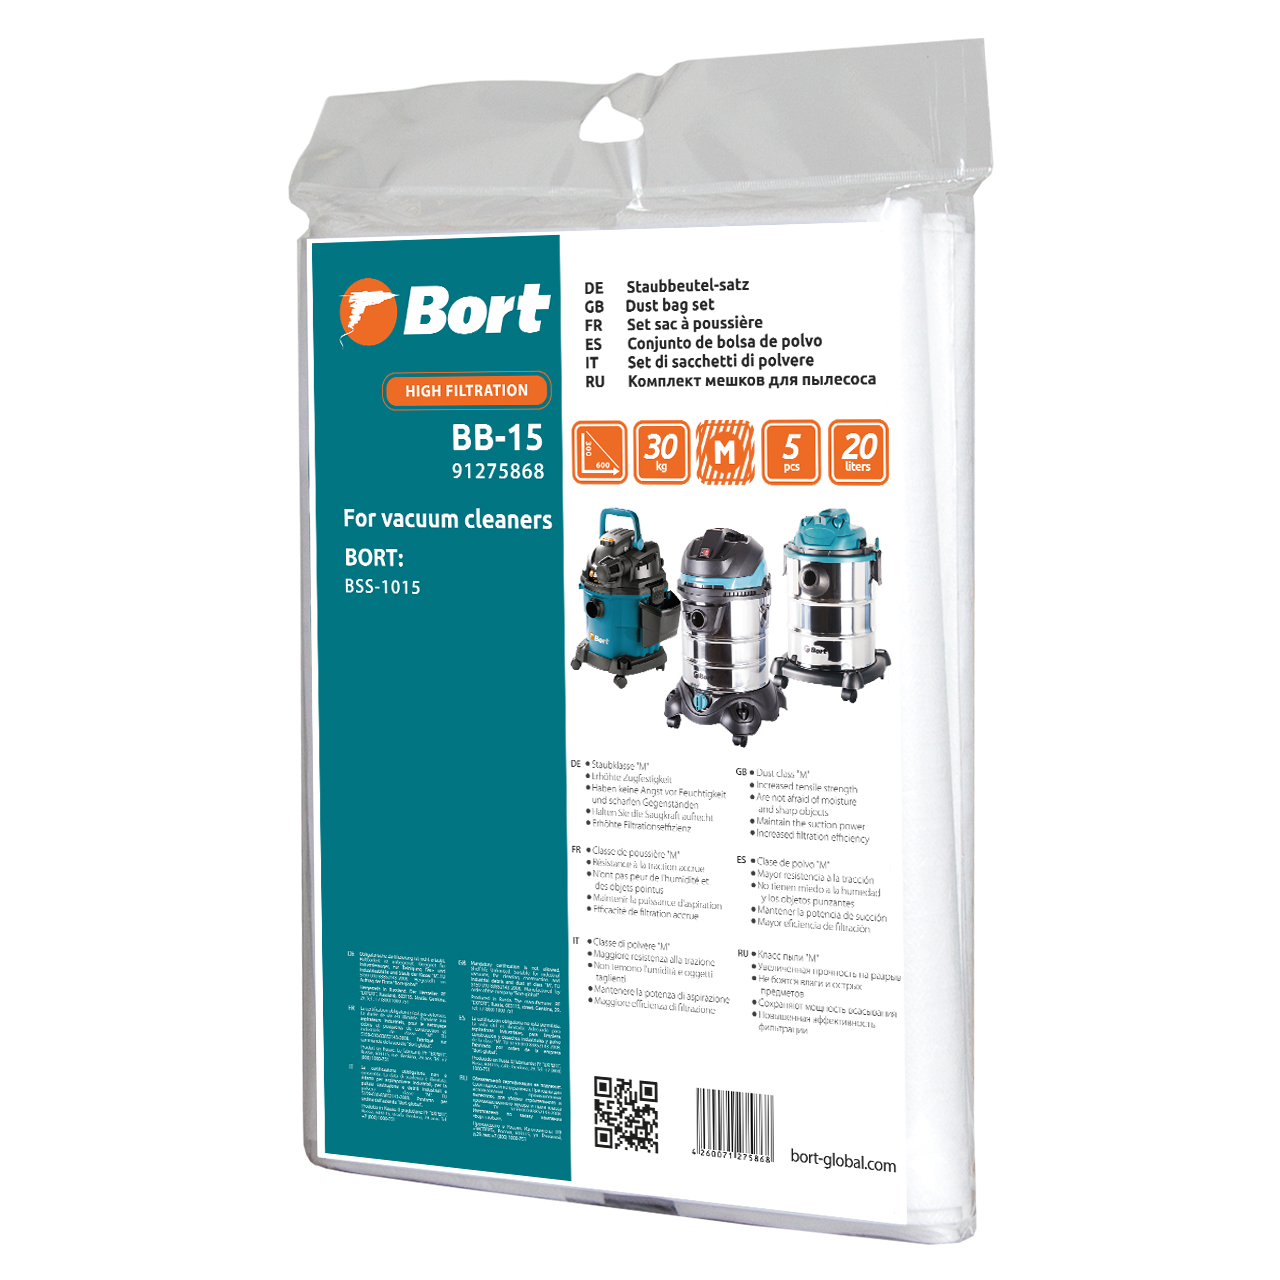 Фото - Kit bags пылесборных for vacuum cleaner Bort BB-15 (Volume 20 L, suitable for BSS-1015) 10pcs lot pic16f877 20 l pic16f877 plcc original electronic ic kit in stock